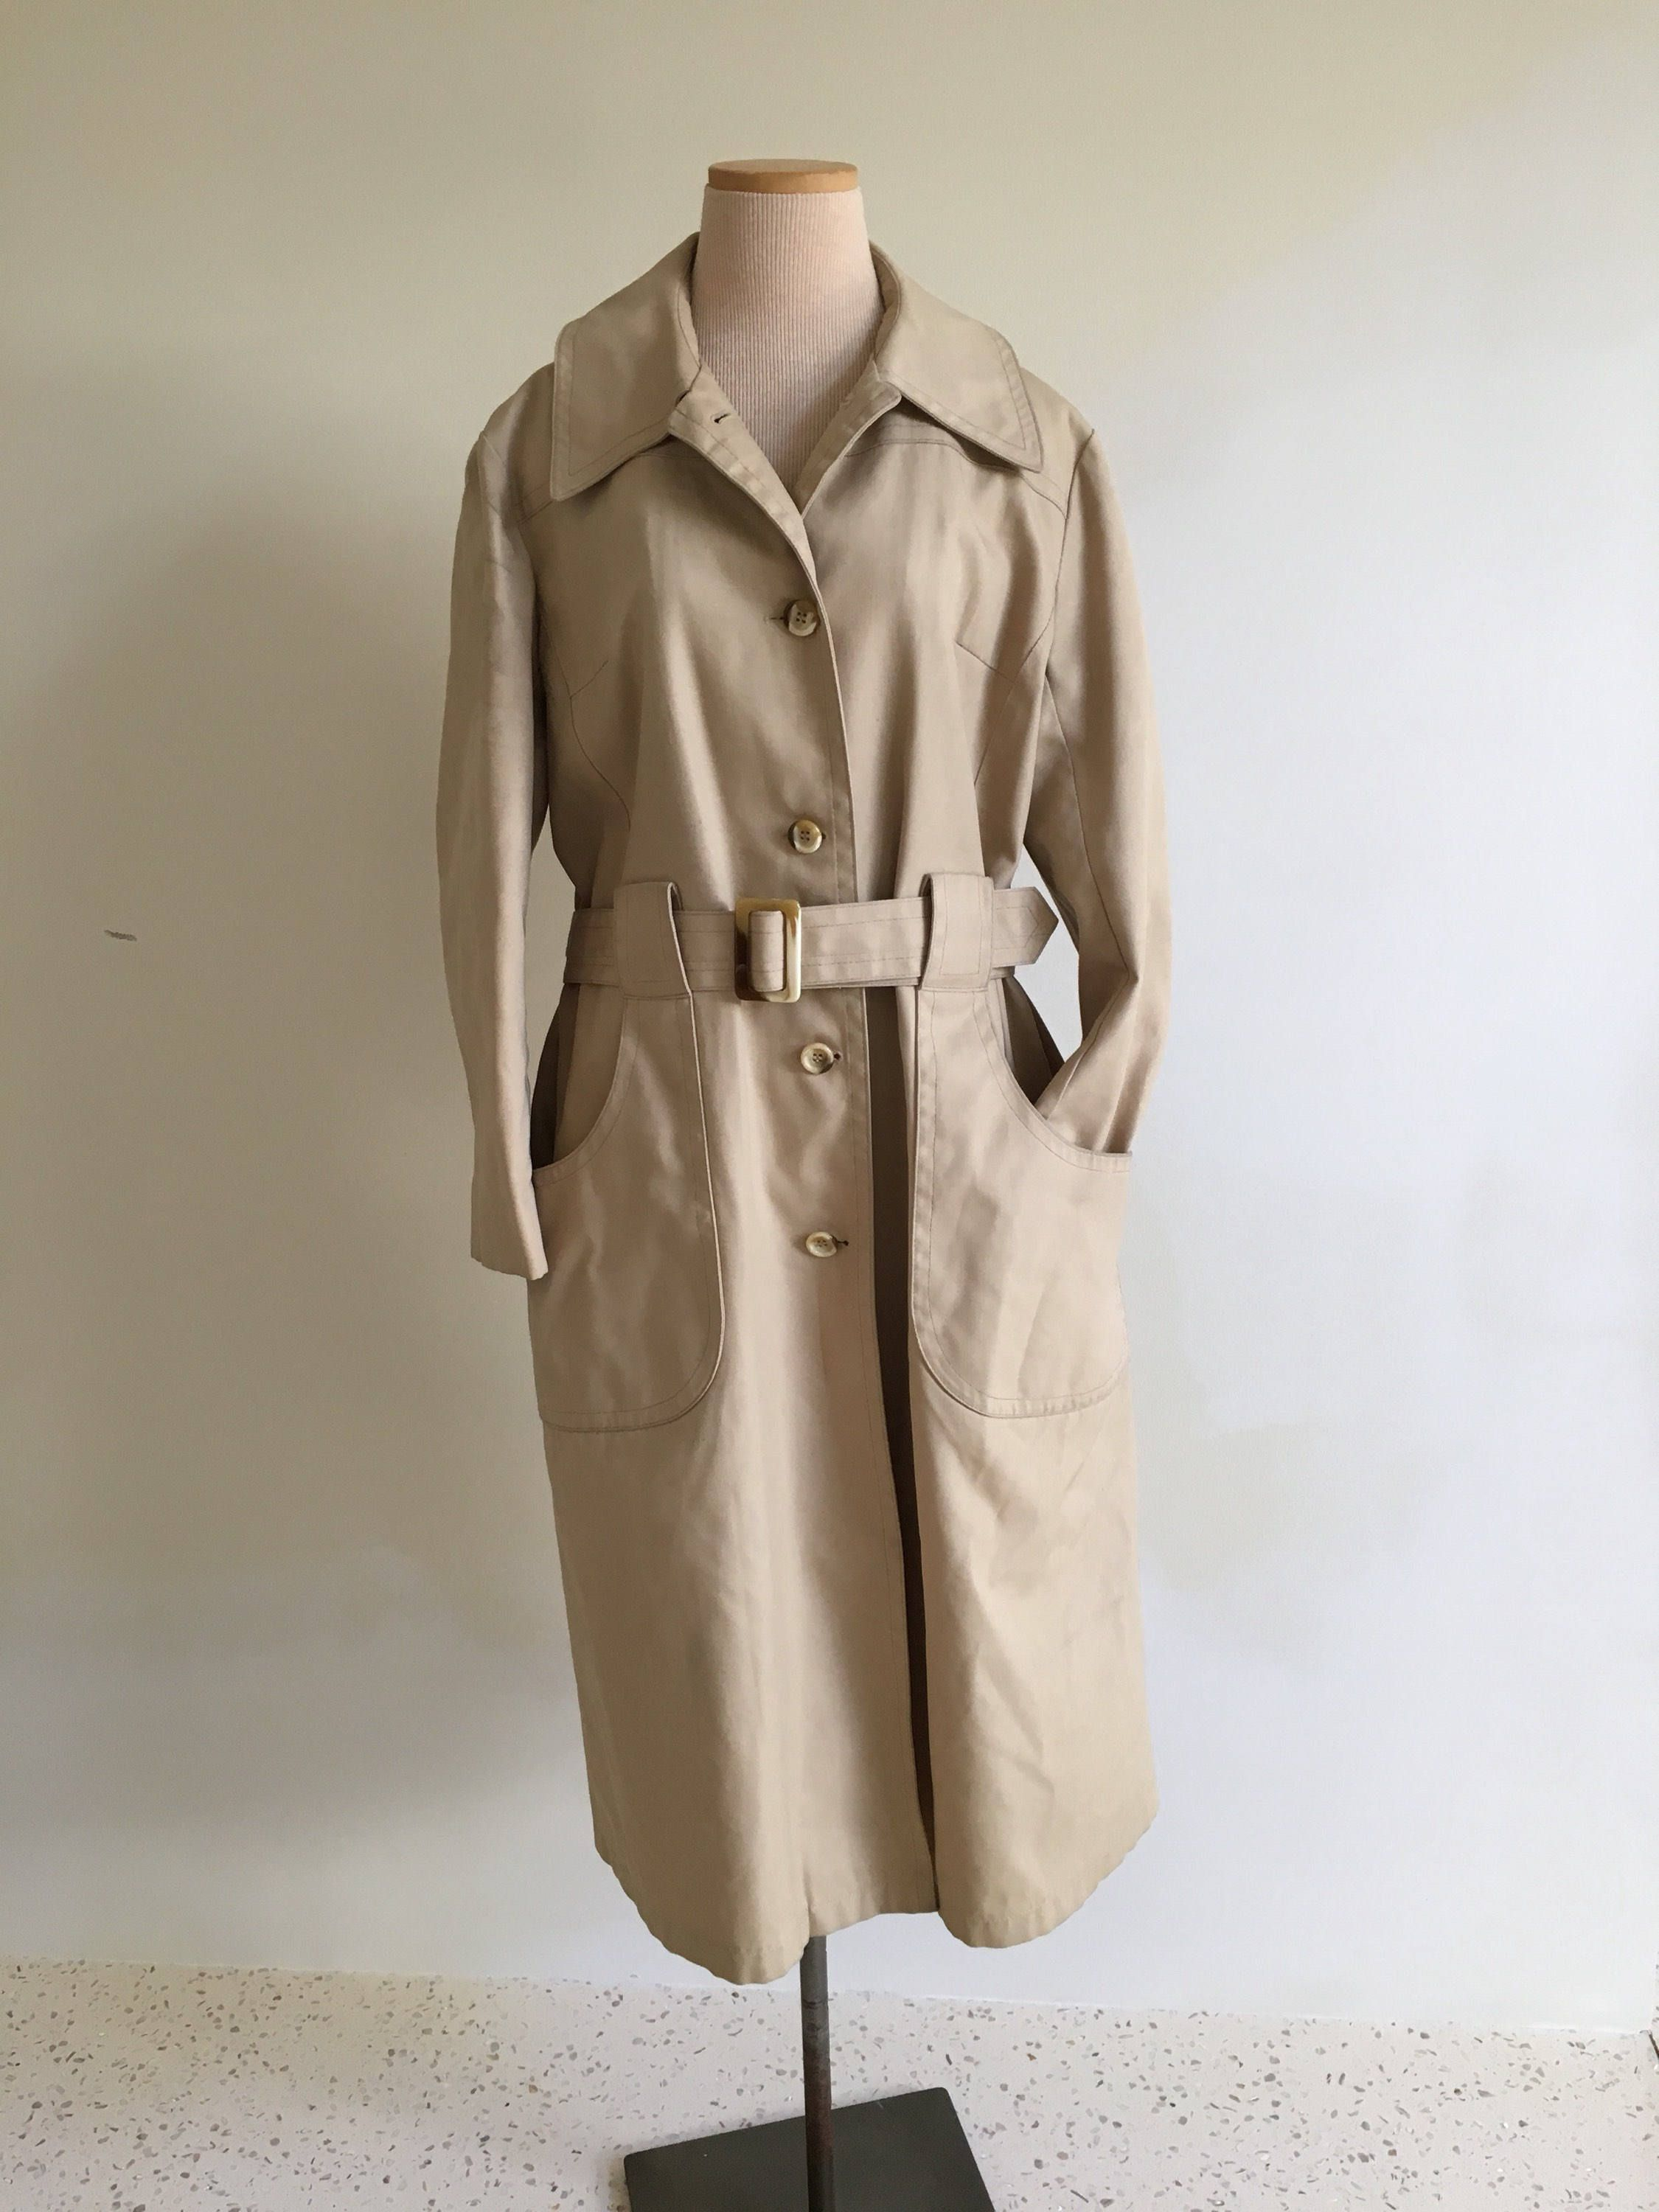 d1839a4e1cf Vintage 60s trench coat women XL raincoat 1960s trench coat long belted  beige tan rain mod car 60s coat 50s 70s trench midi canvas spy retro by ...